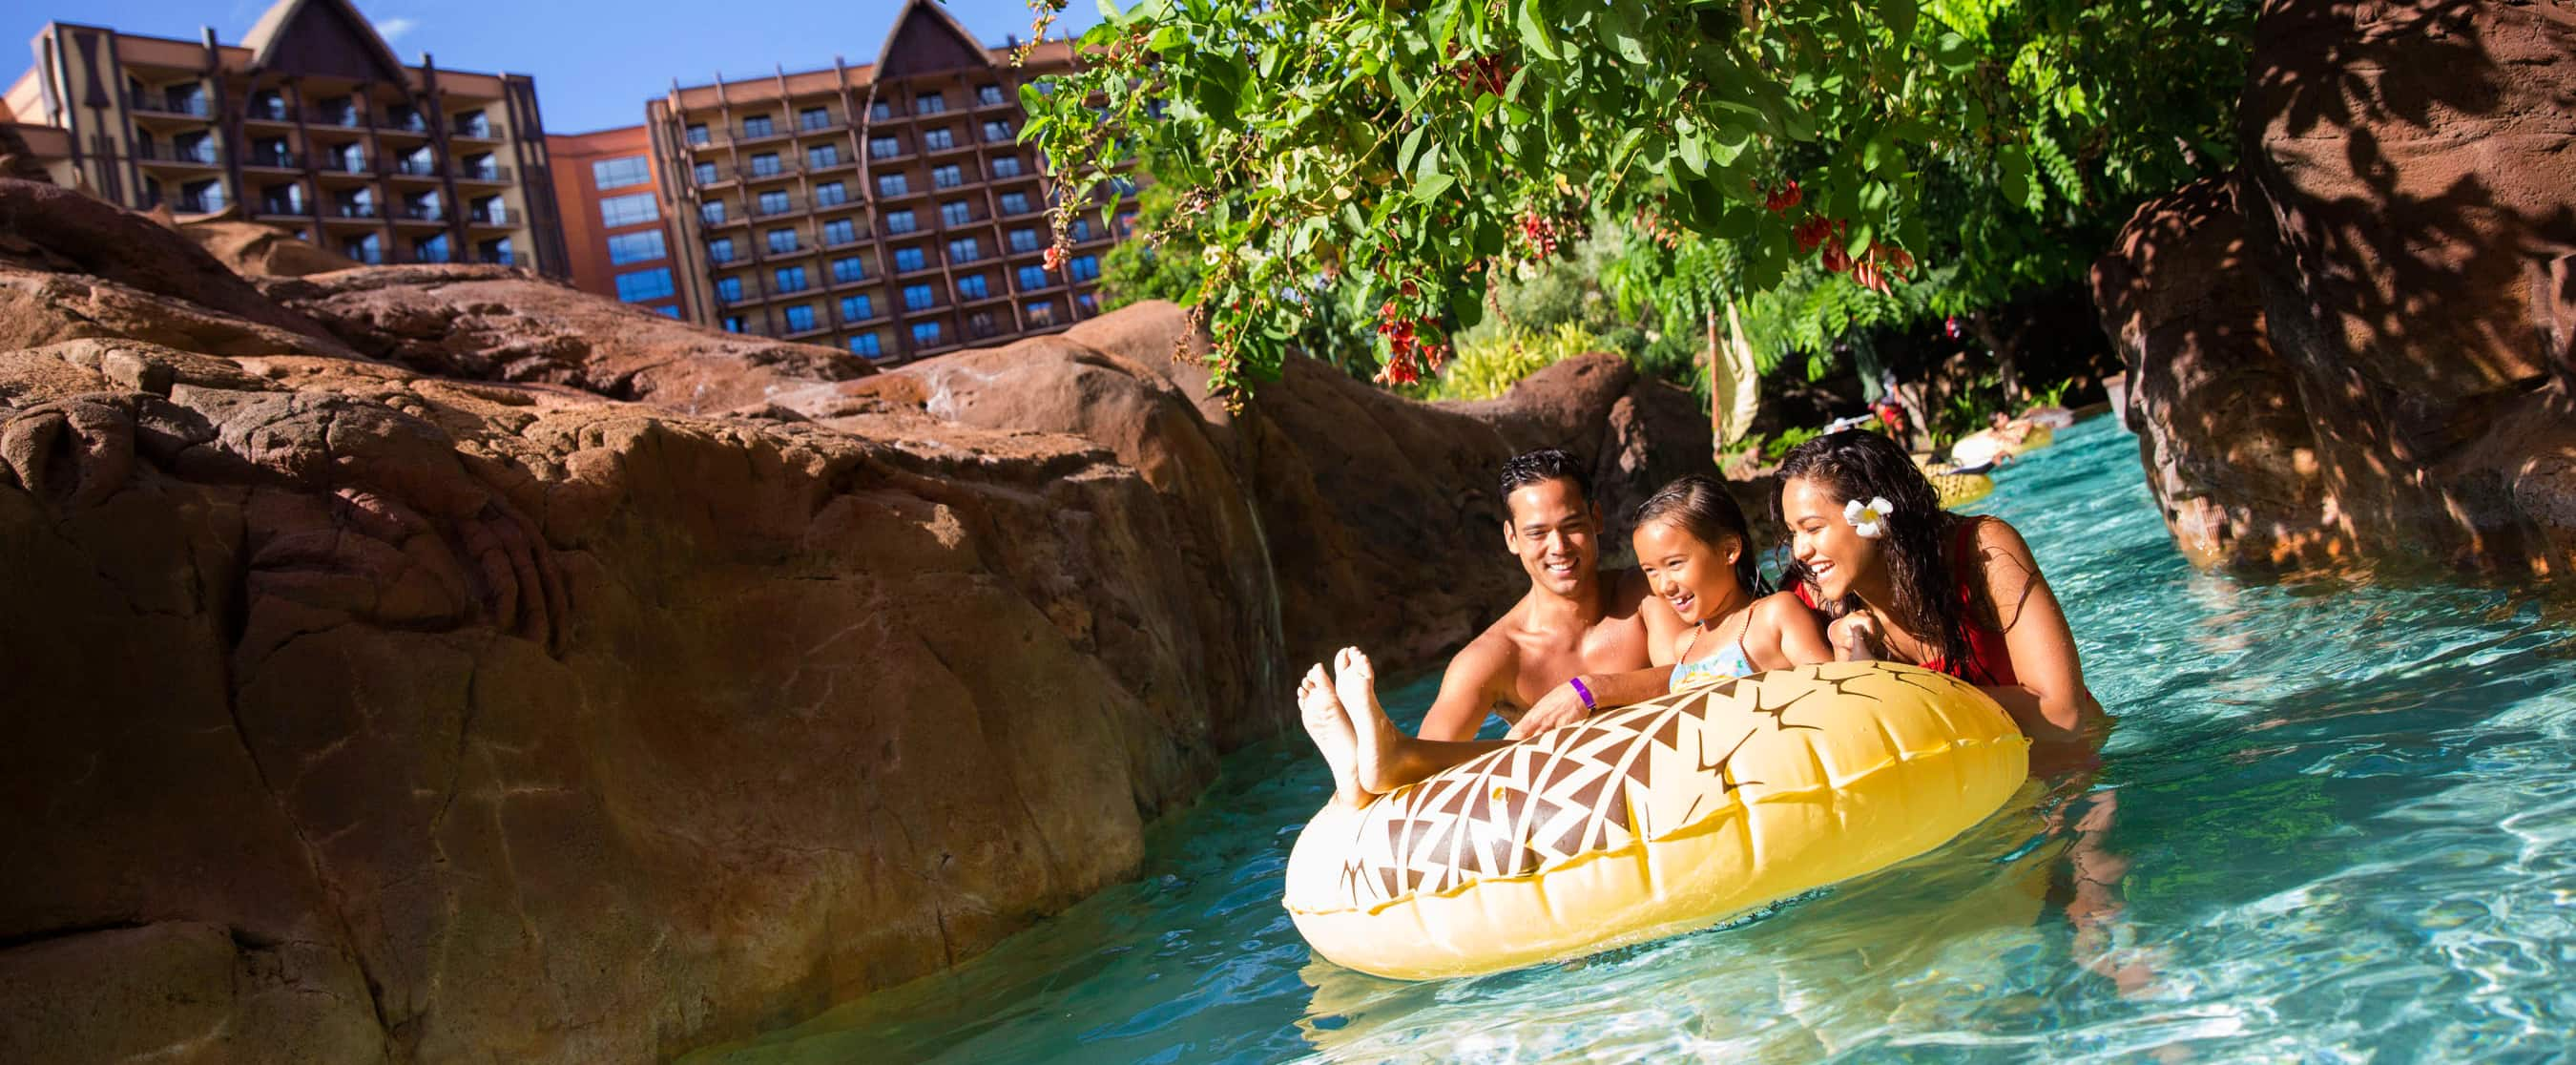 A girl on an inner tube in a lazy river with her father and mother, with rocky banks and a tree overhead